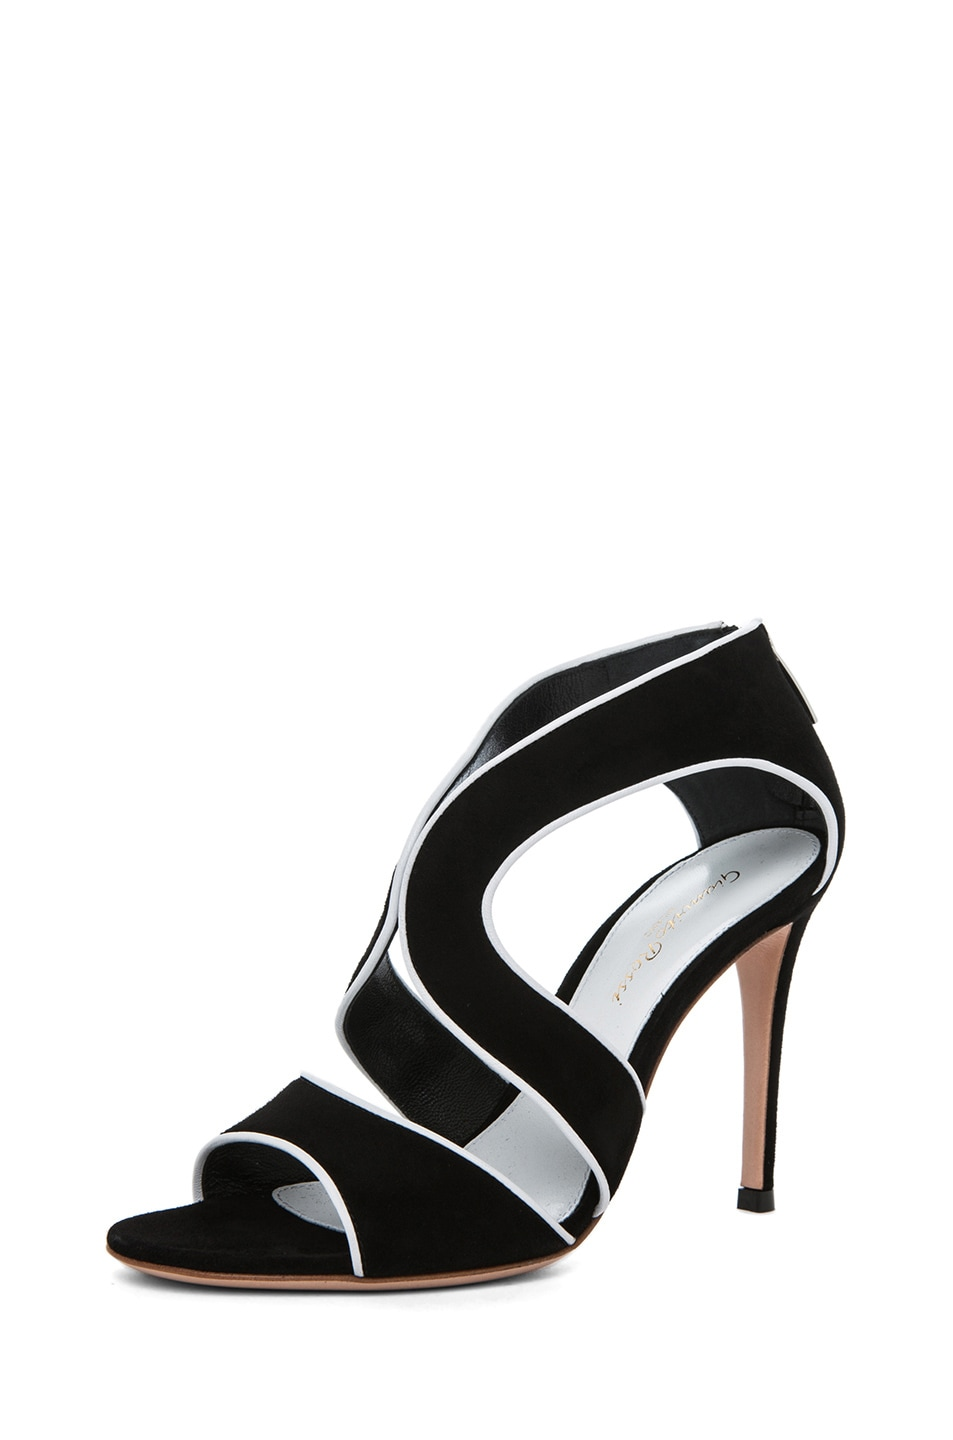 Image 2 of Gianvito Rossi Suede White Contrast Heel in Black